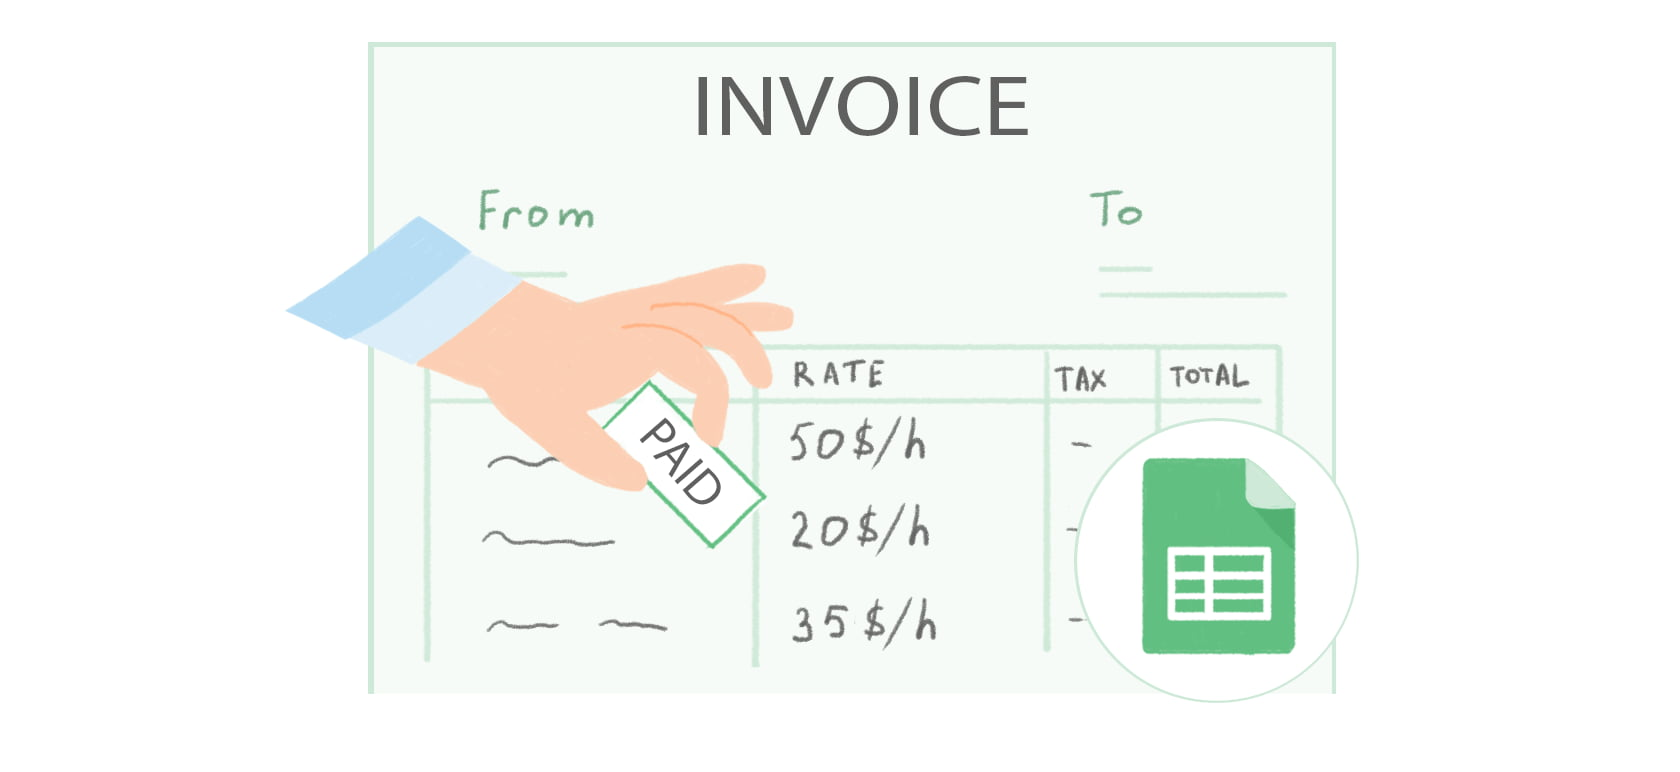 Free Google Docs Invoice Template